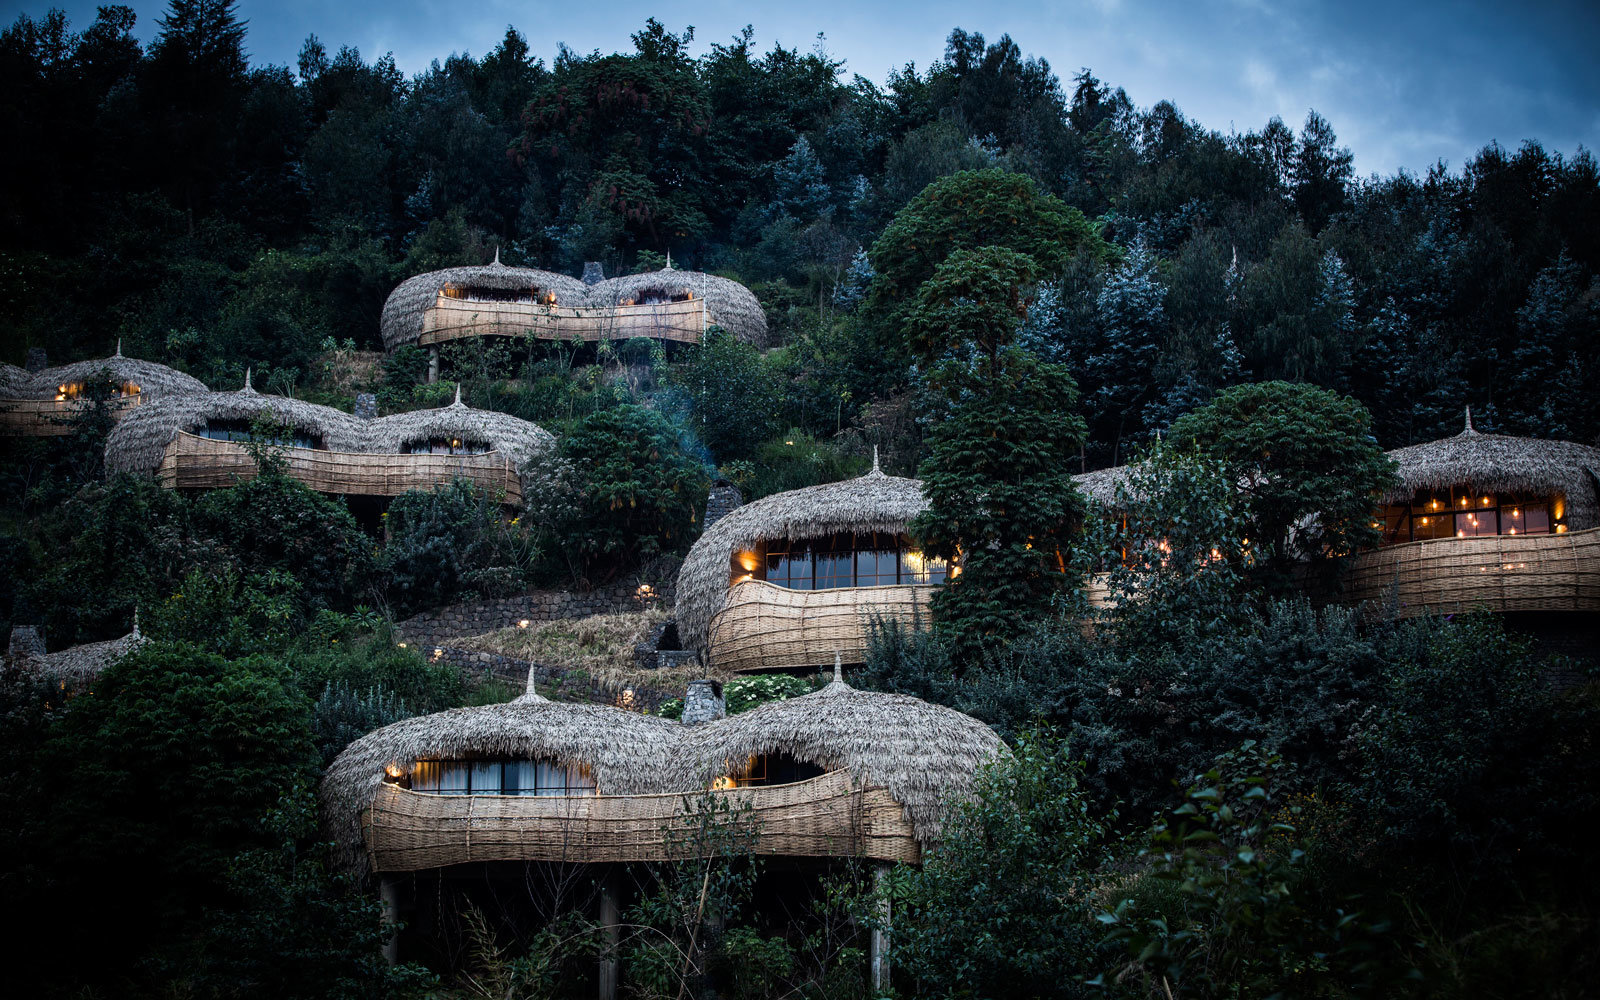 You Can Sleep In A Luxury Treehouse In The Middle Of A